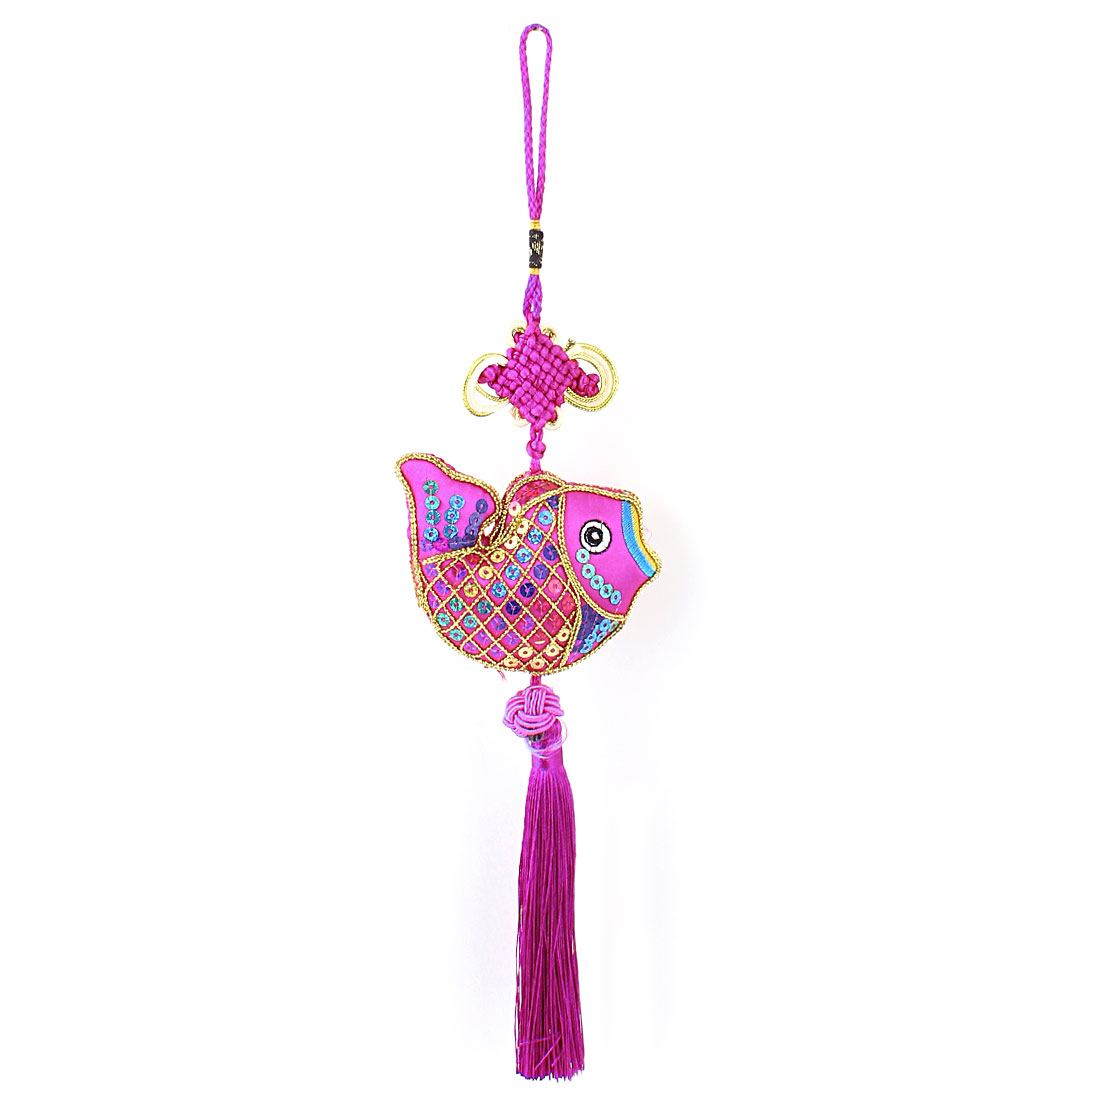 Home Decoration Knotting Pendant Chinese Knot Hanging Tassels Purple